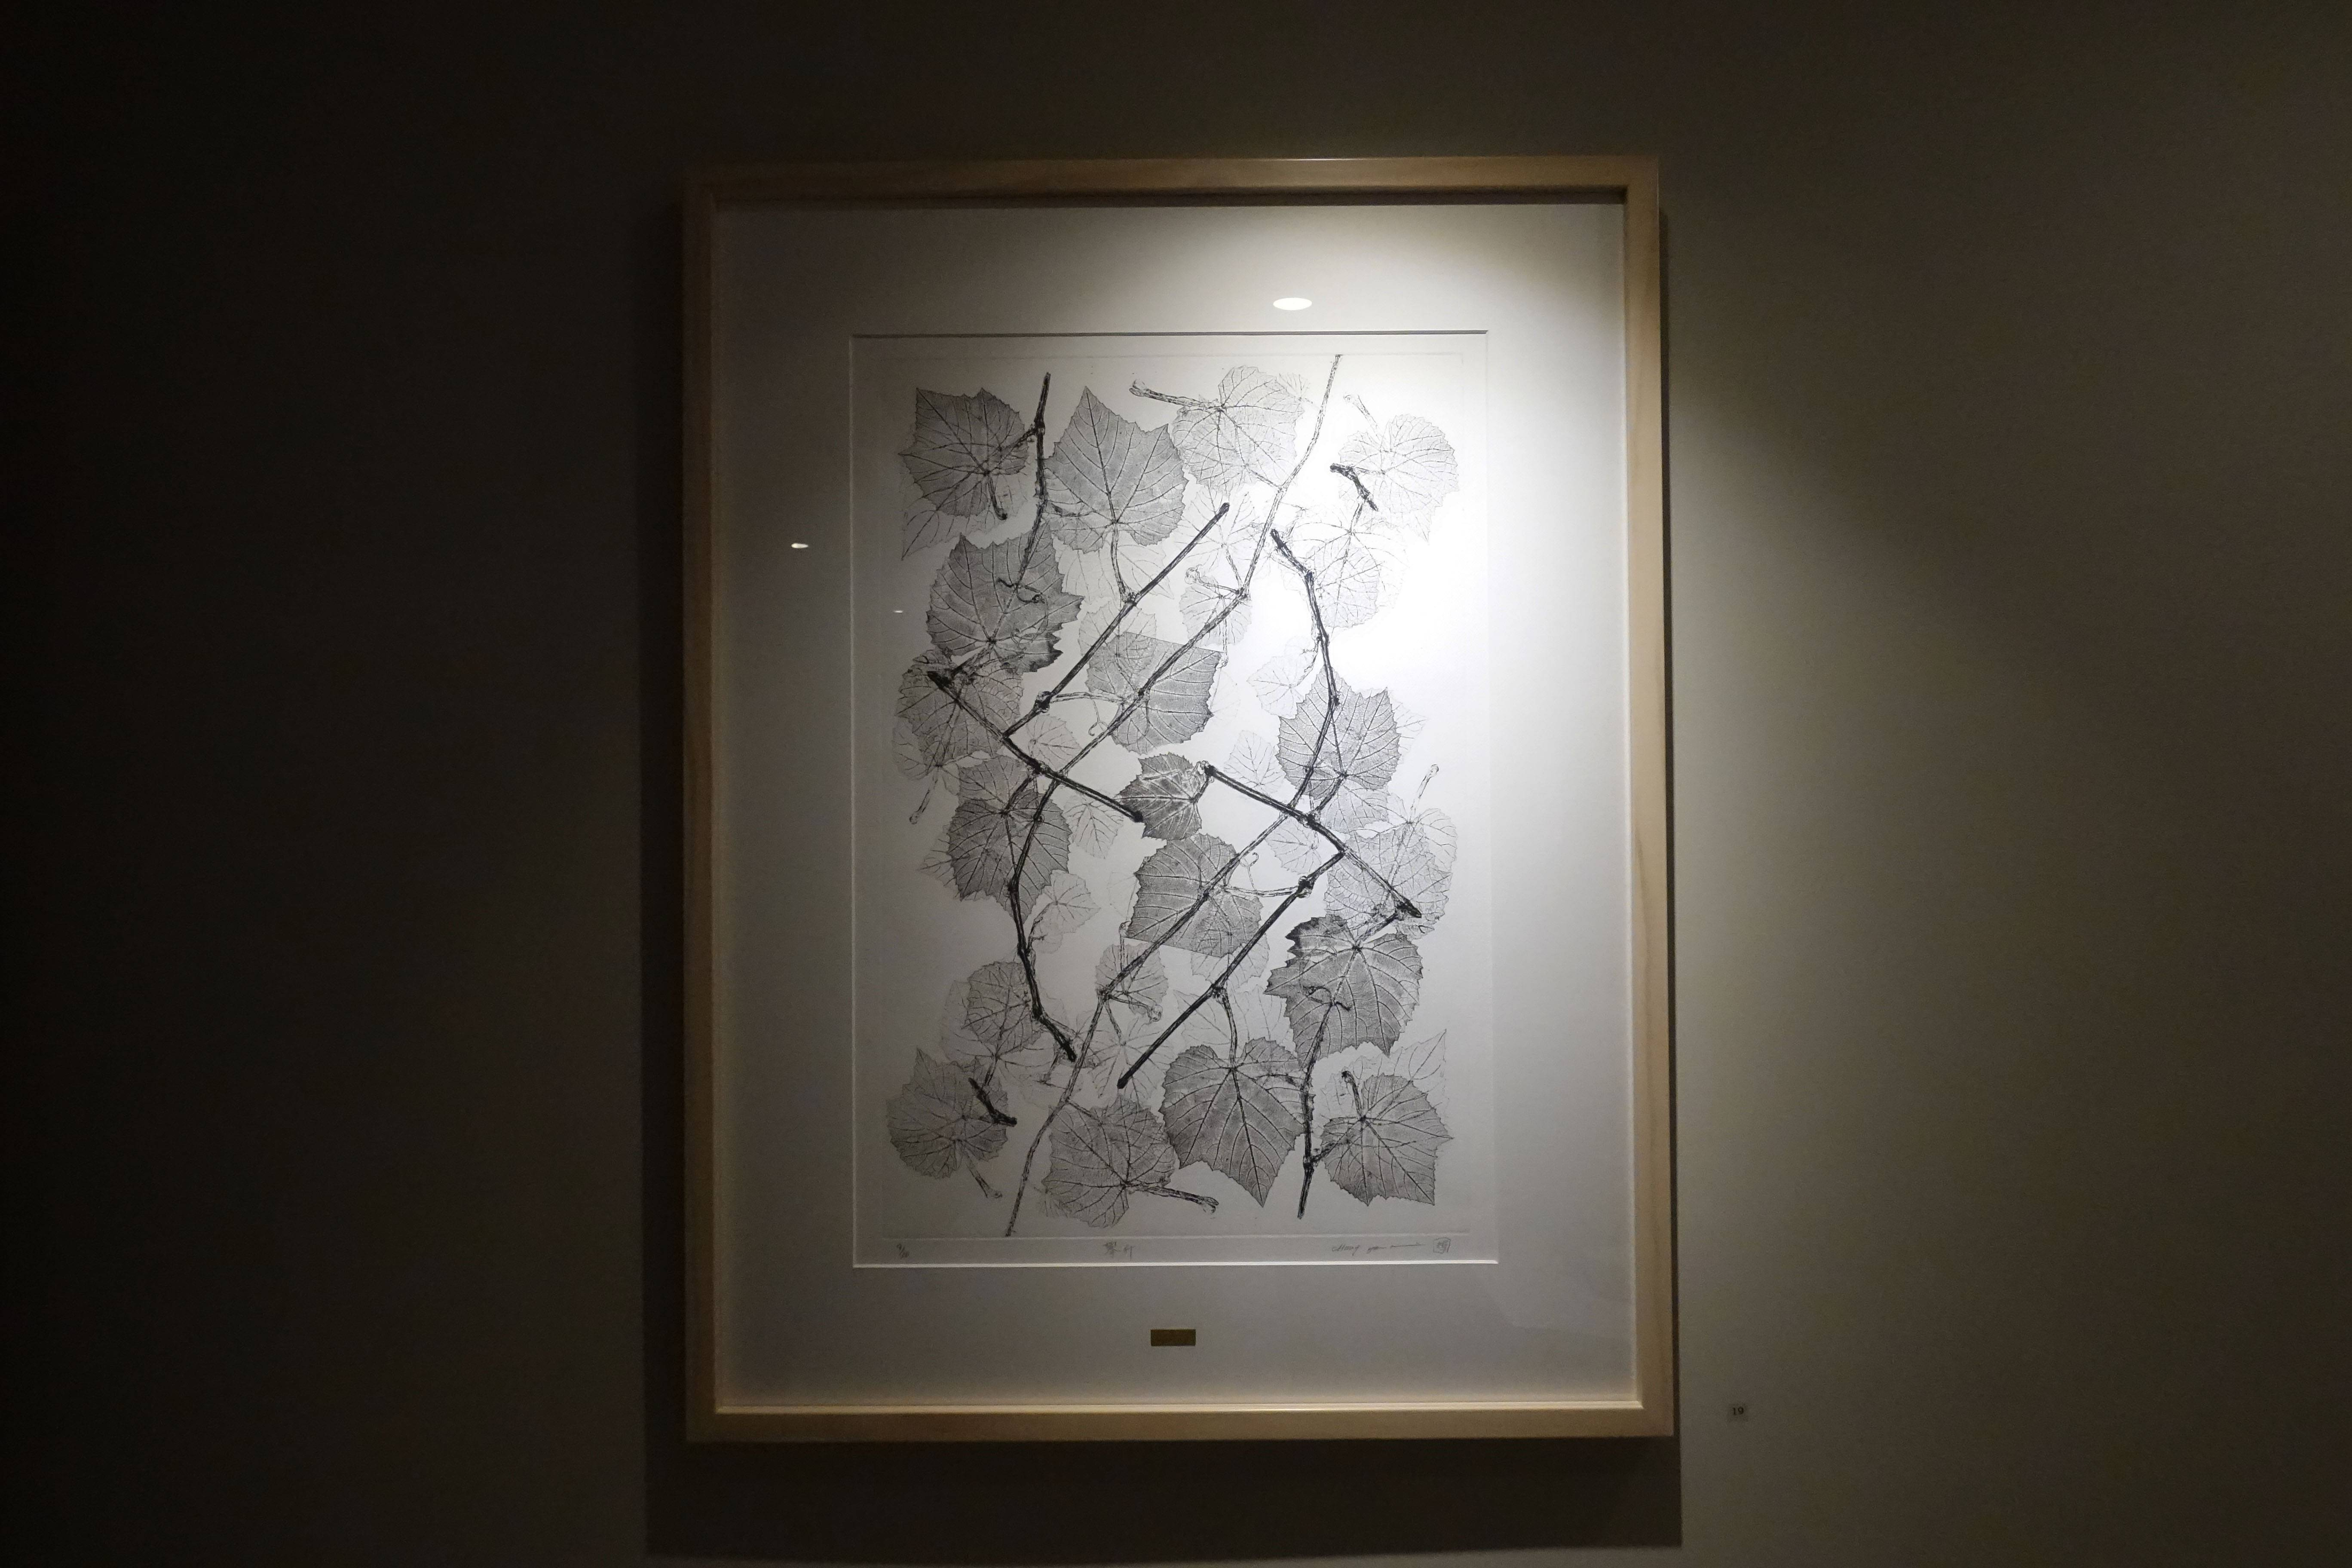 鐘有輝,《攀升 Rising》, 2018,蝕刻版、紙張 Etching, Paper (Soft Ground)。